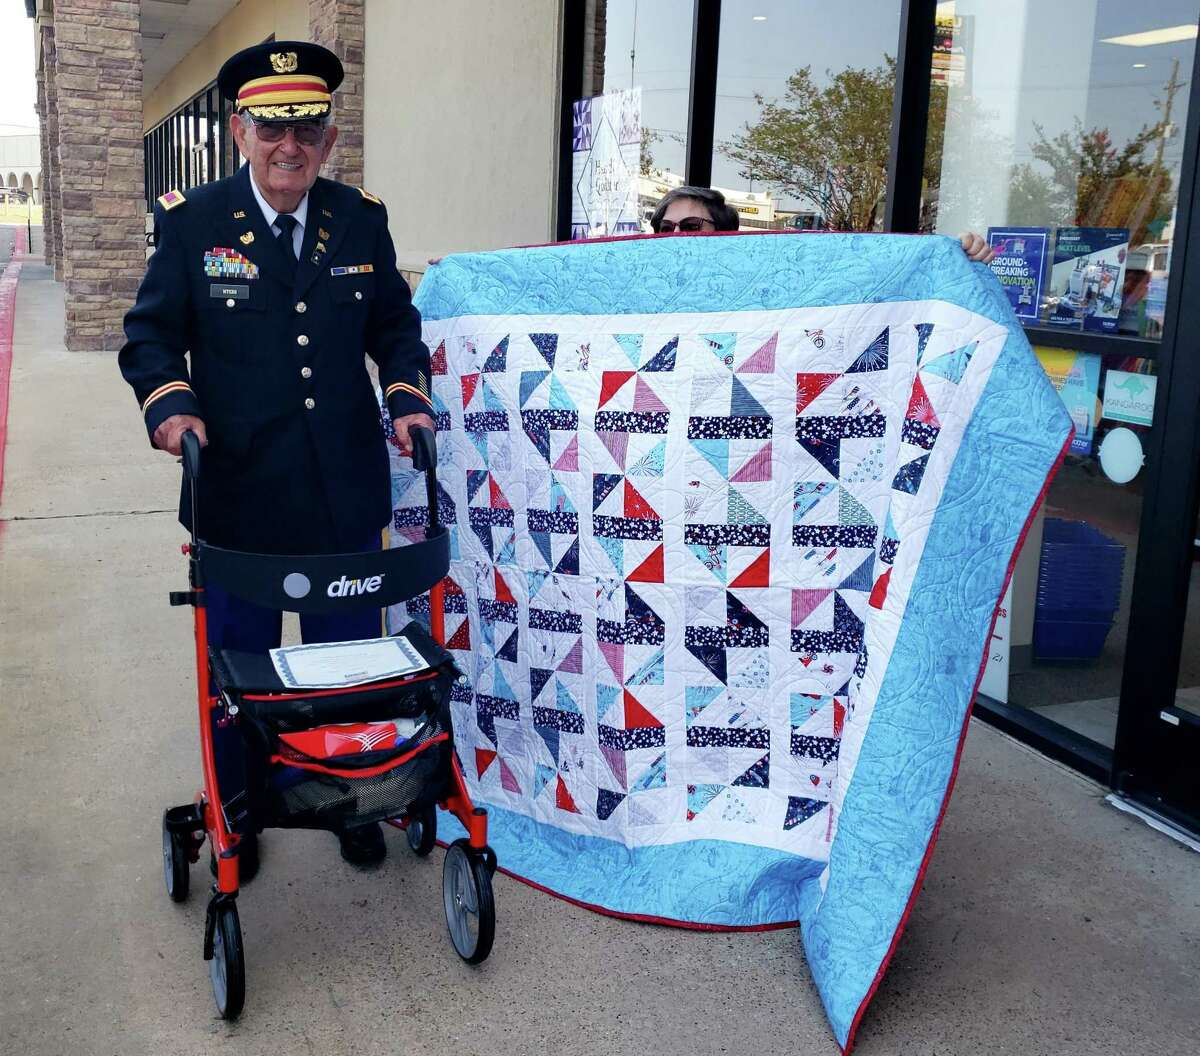 Veteran Calvin Myers was one of 11 veterans to receive a quilt from the Quilts of Valor project. The group presented quilts on Saturday in honor of the 20th anniversary of the 9/11 attacks. The quilts were presented at the Sewing and Vacuum Warehouse in Conroe.